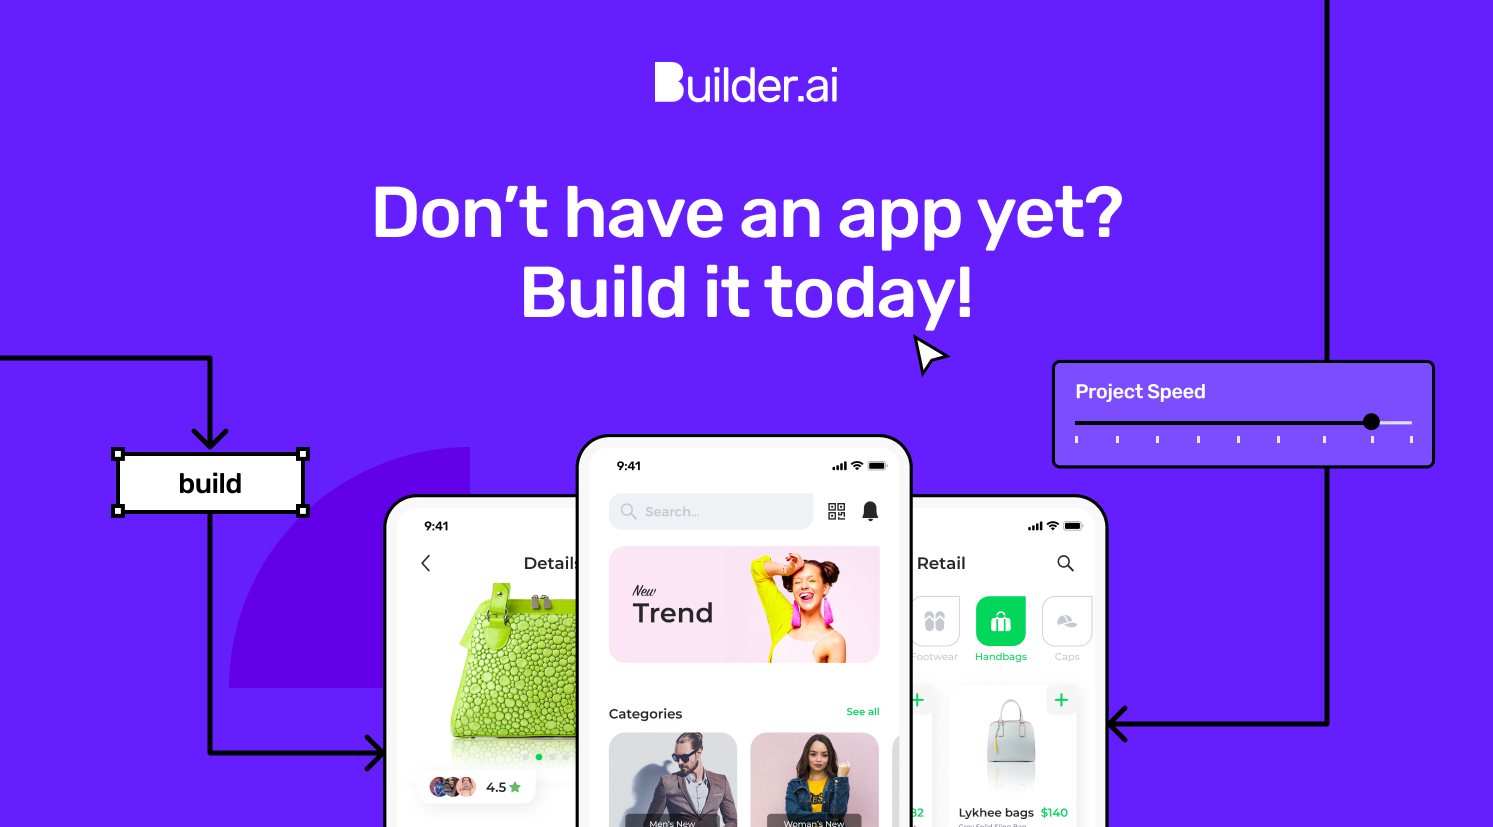 Build an app illustration with app screens by Builder.ai